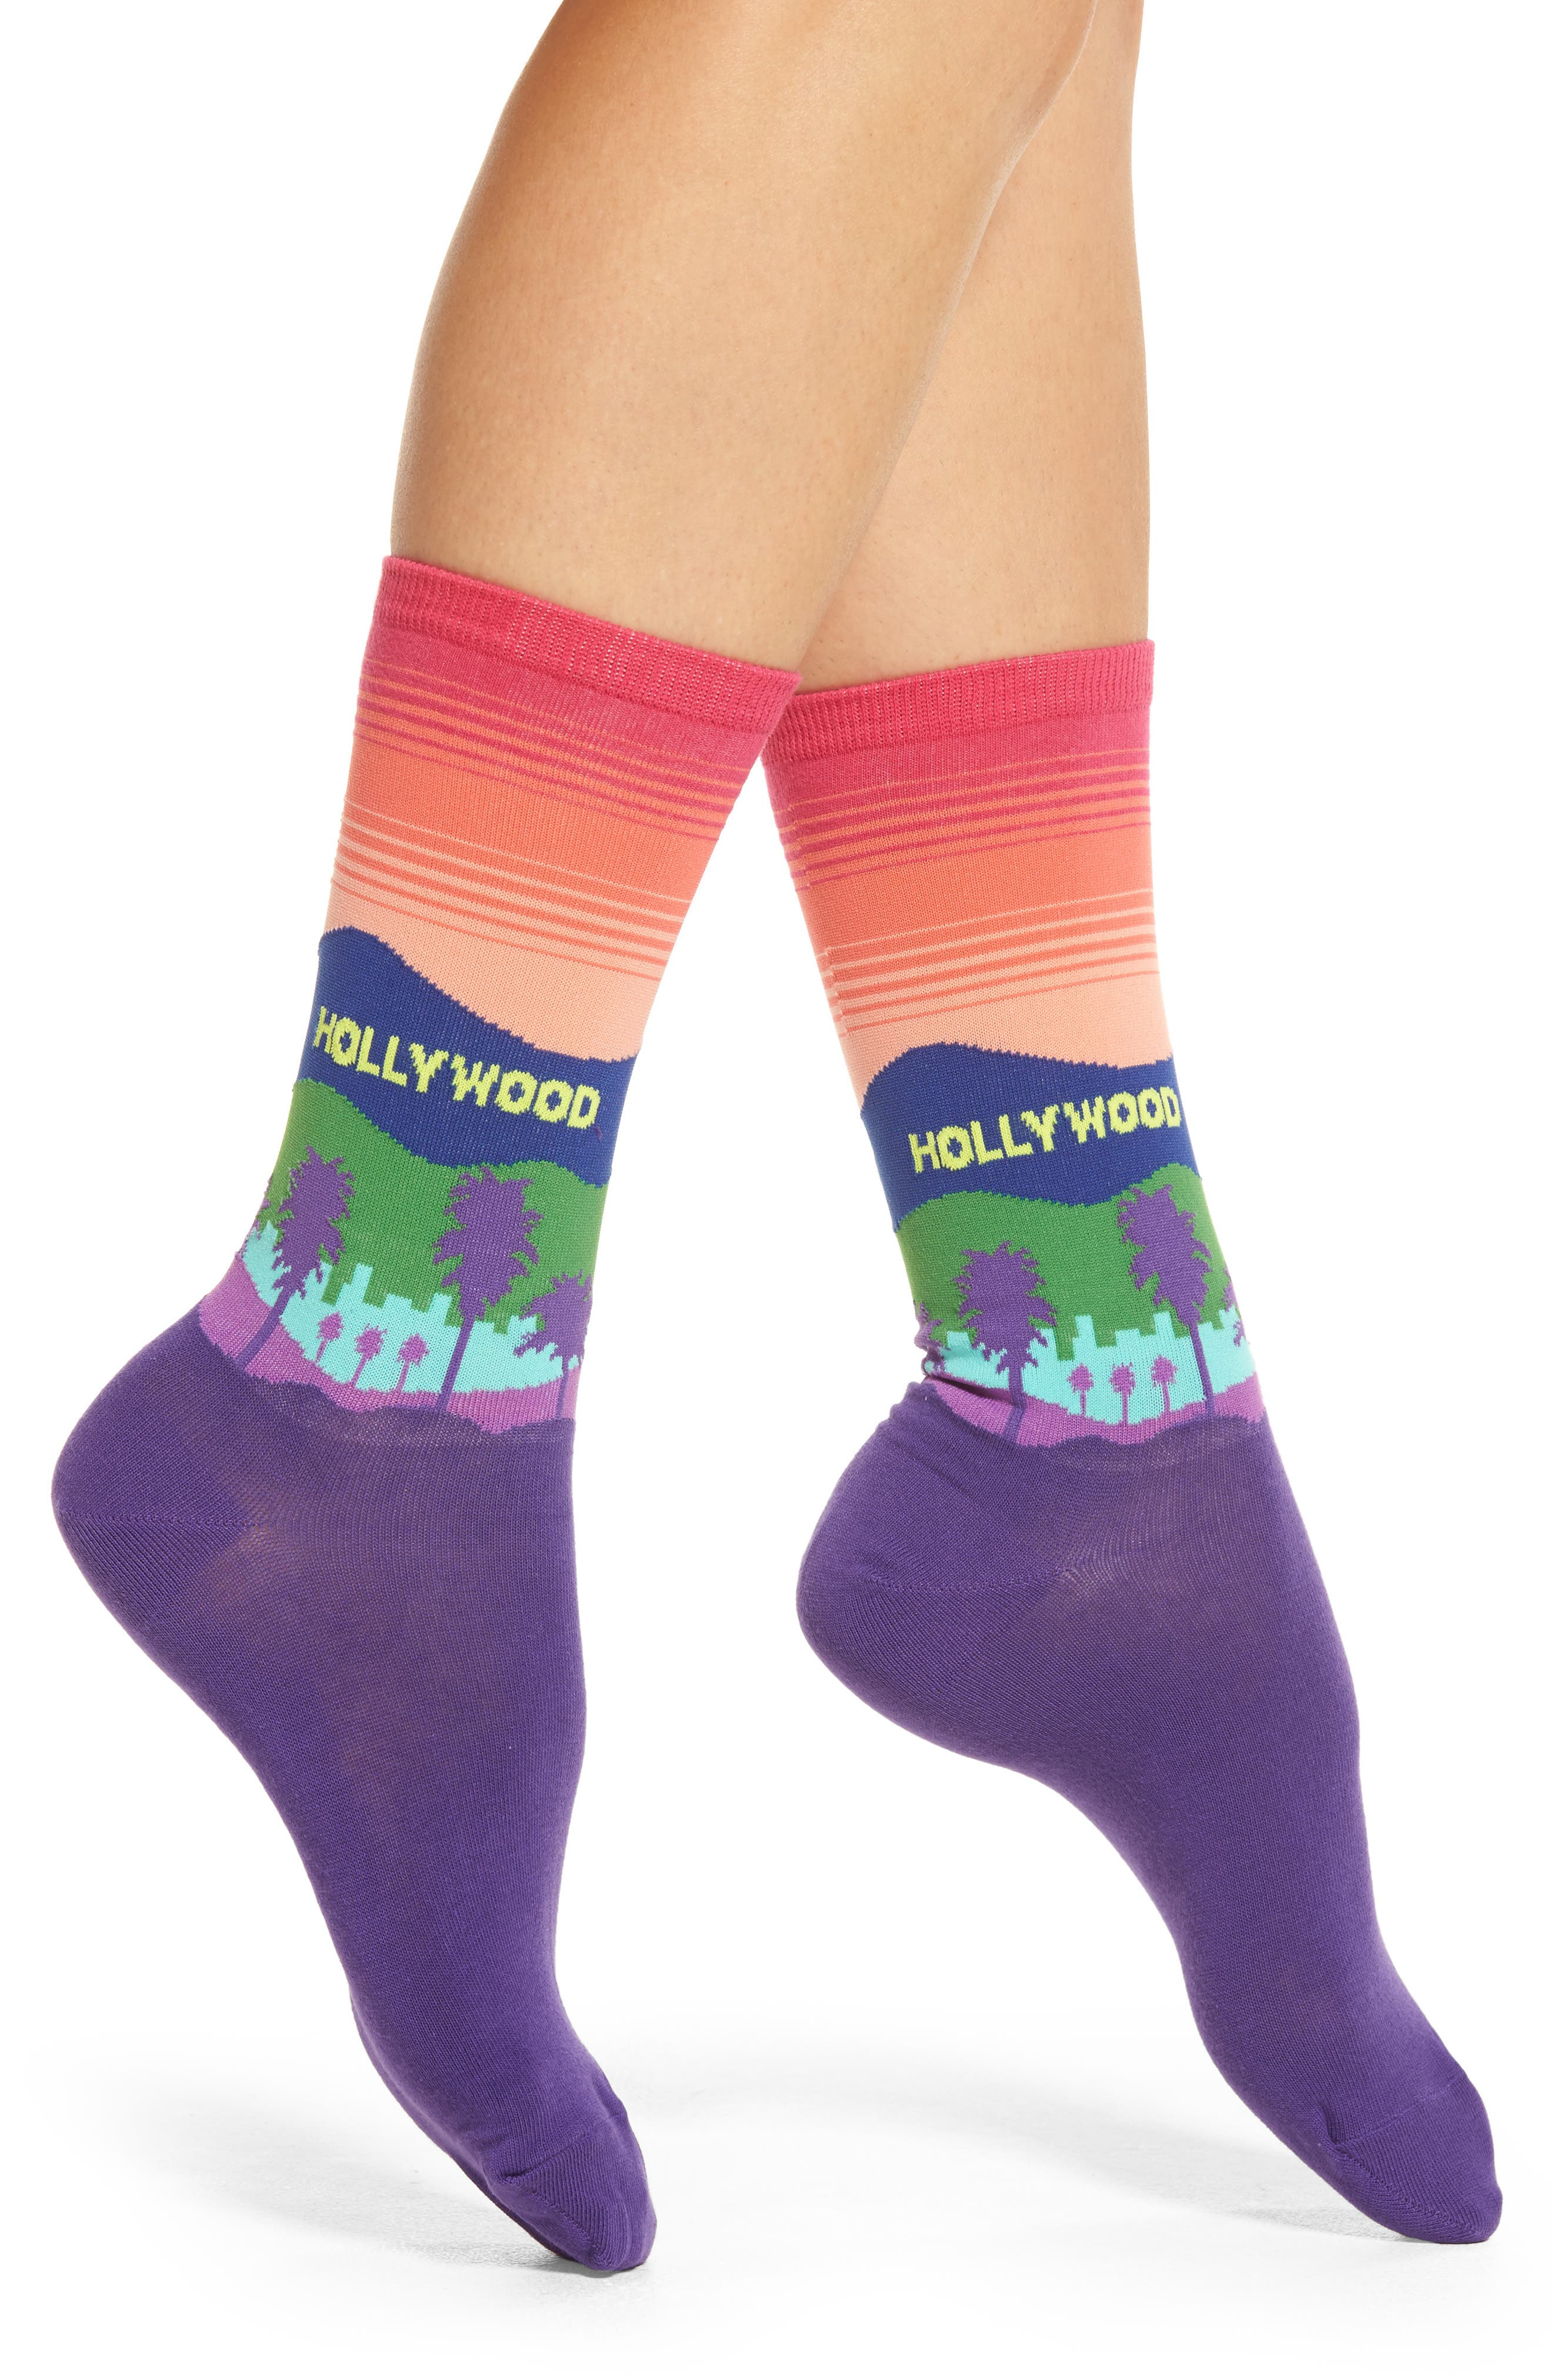 Main Image - Hot Sox Hollywood Crew Socks (3 or $15)